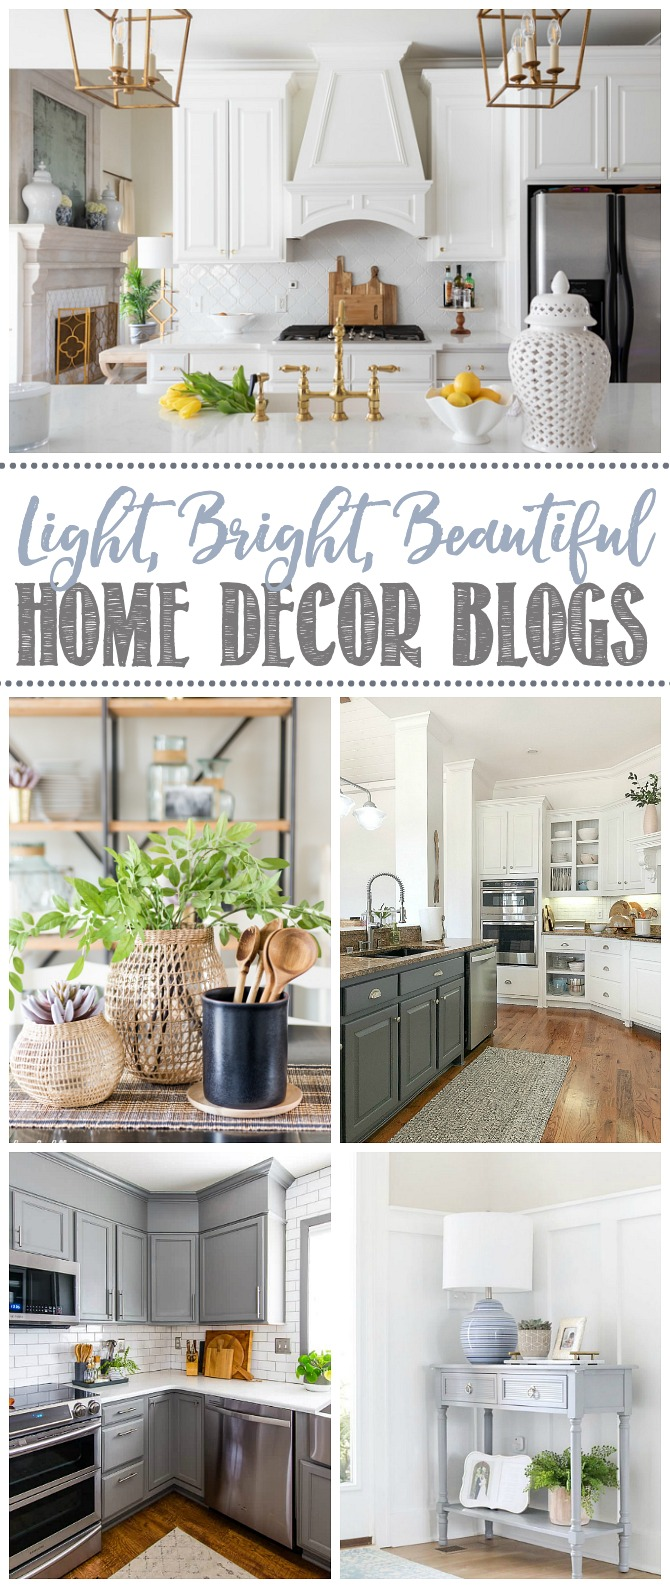 Light, bright, and beautiful home decor blogs.